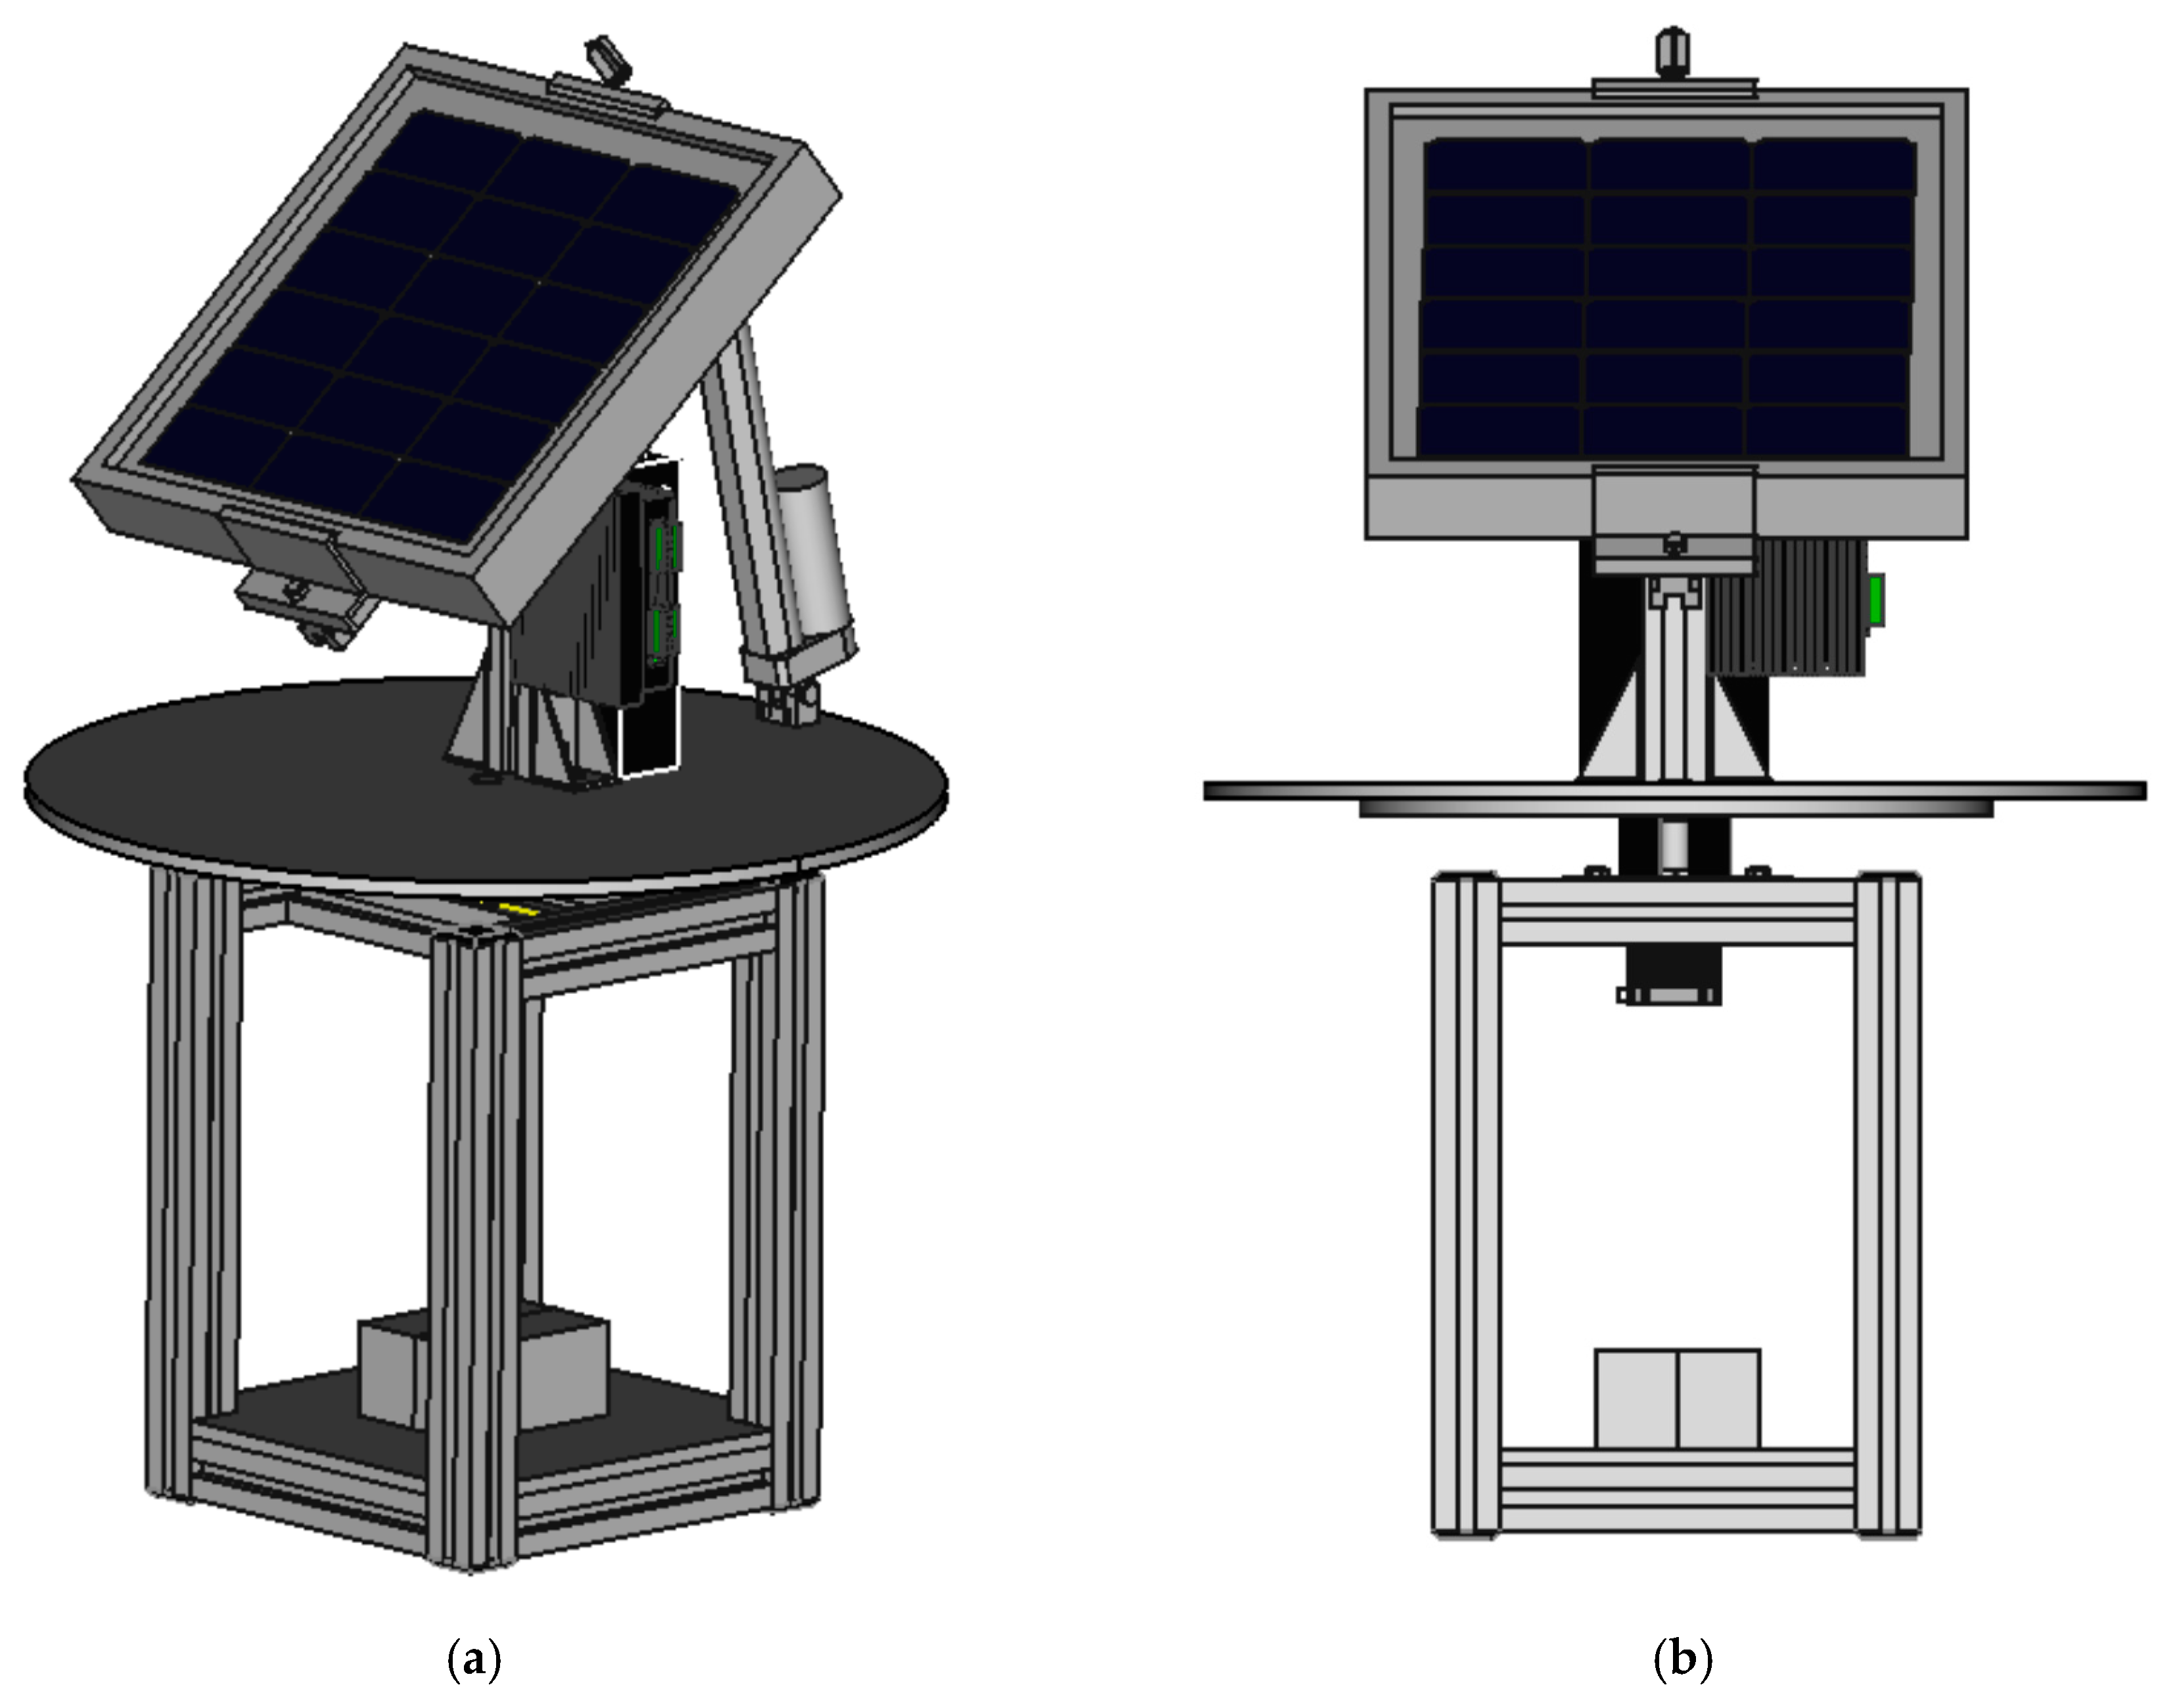 Energies Free Full Text New Prototype Of Photovoltaic Solar Tracker Based On Arduino